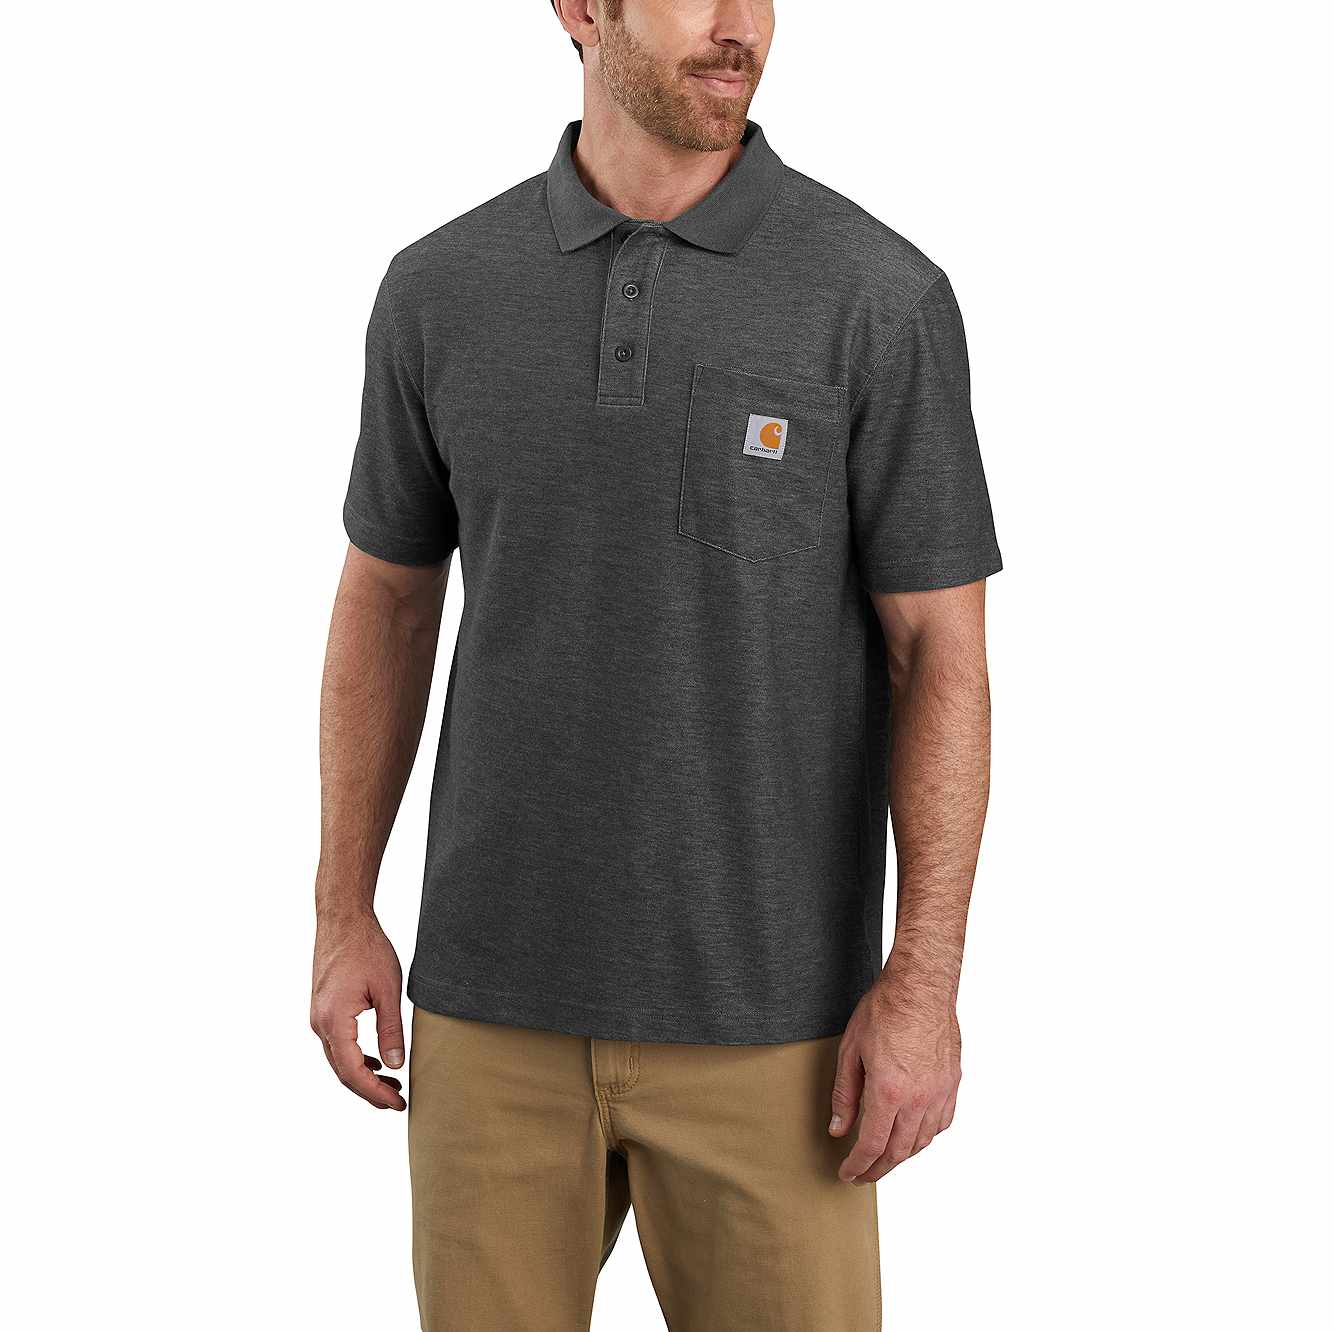 Picture of Loose Fit Midweight Short-Sleeve Pocket Polo in Carbon Heather